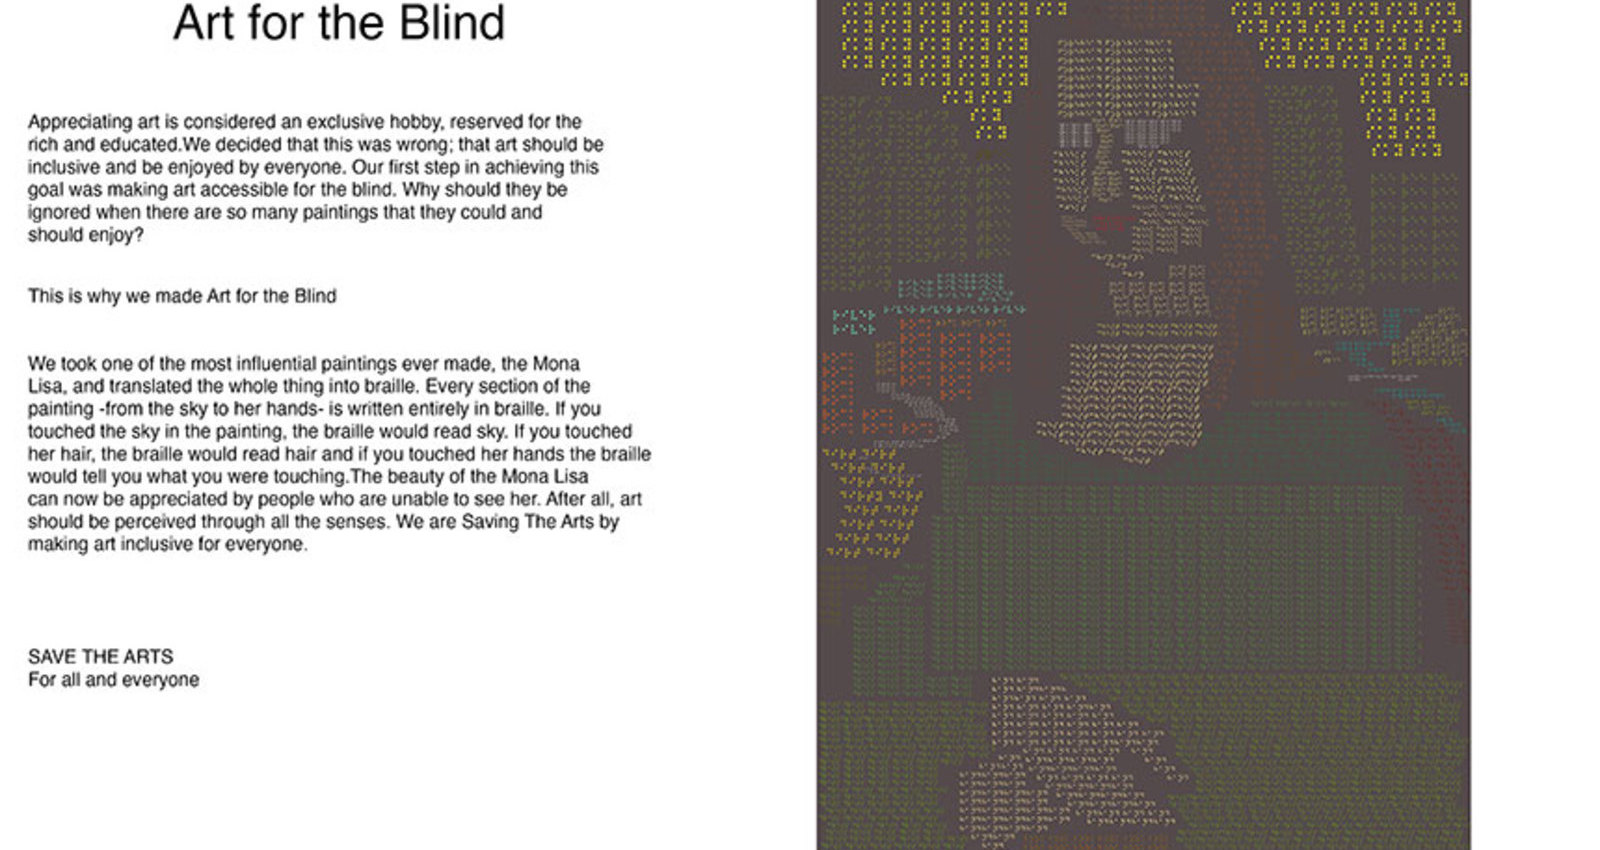 Art for the Blind